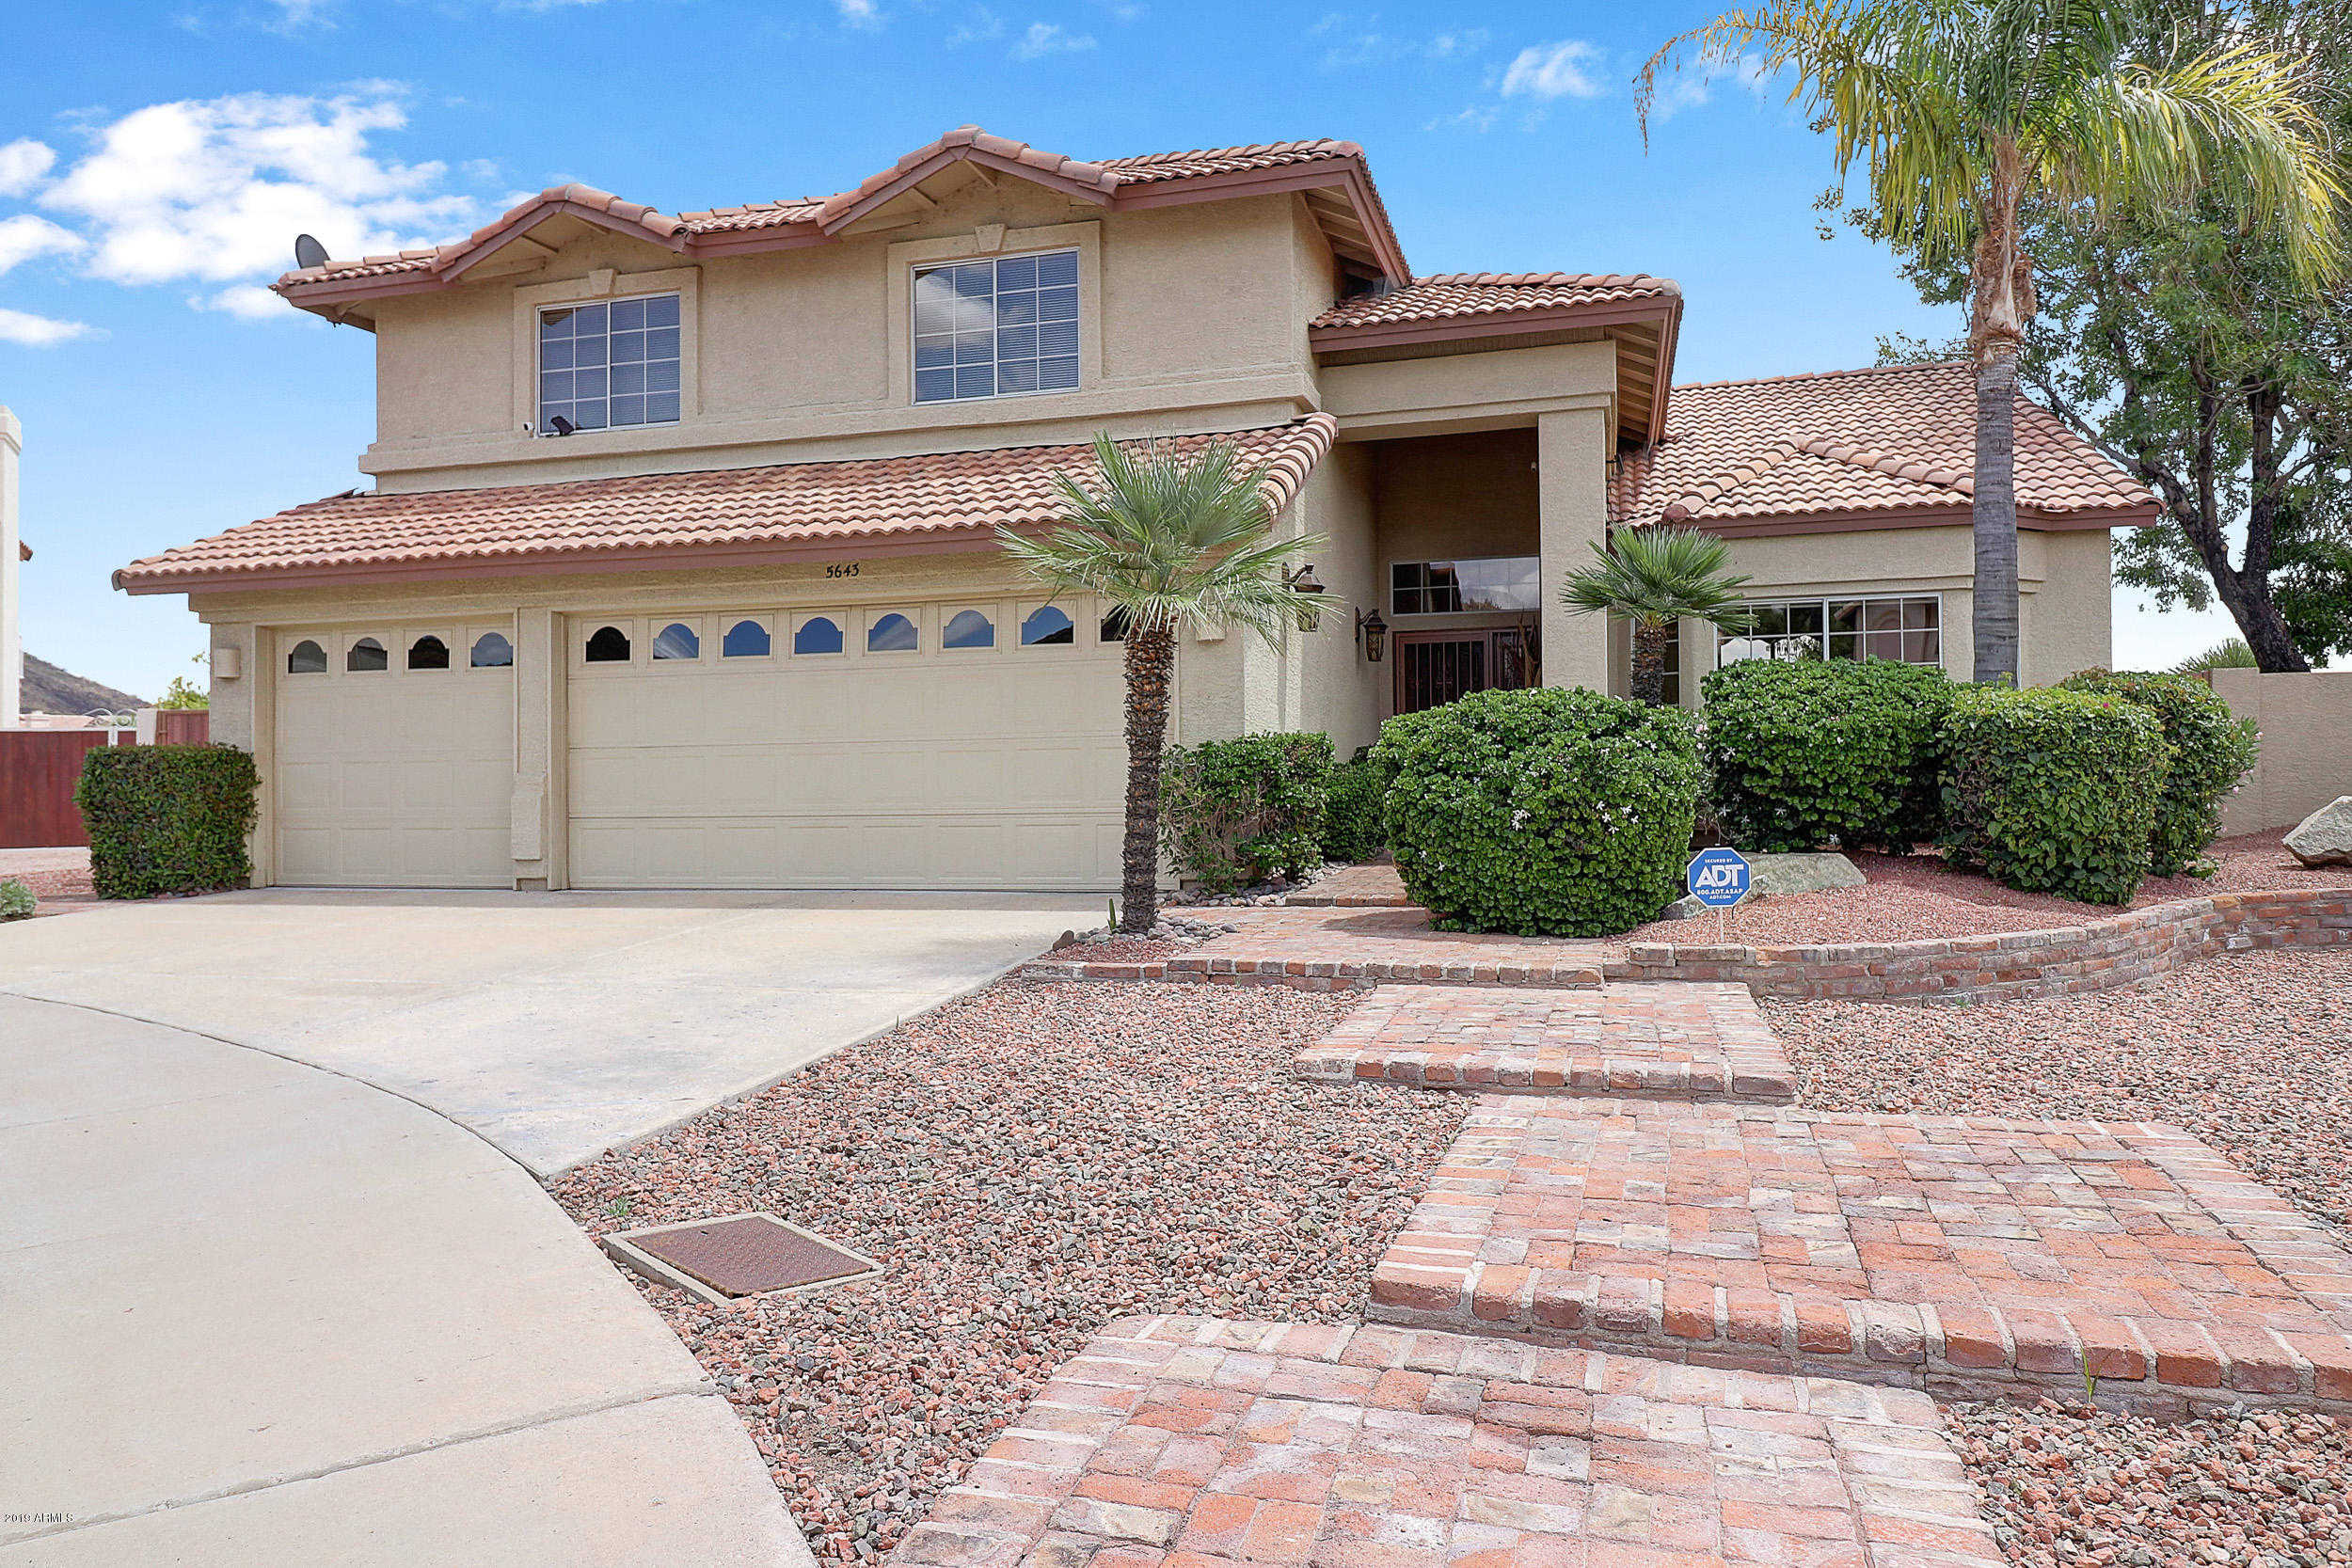 $549,000 - 4Br/3Ba - Home for Sale in Arrowhead Lakes 3 Lot 239-333 Tr A-b, Glendale